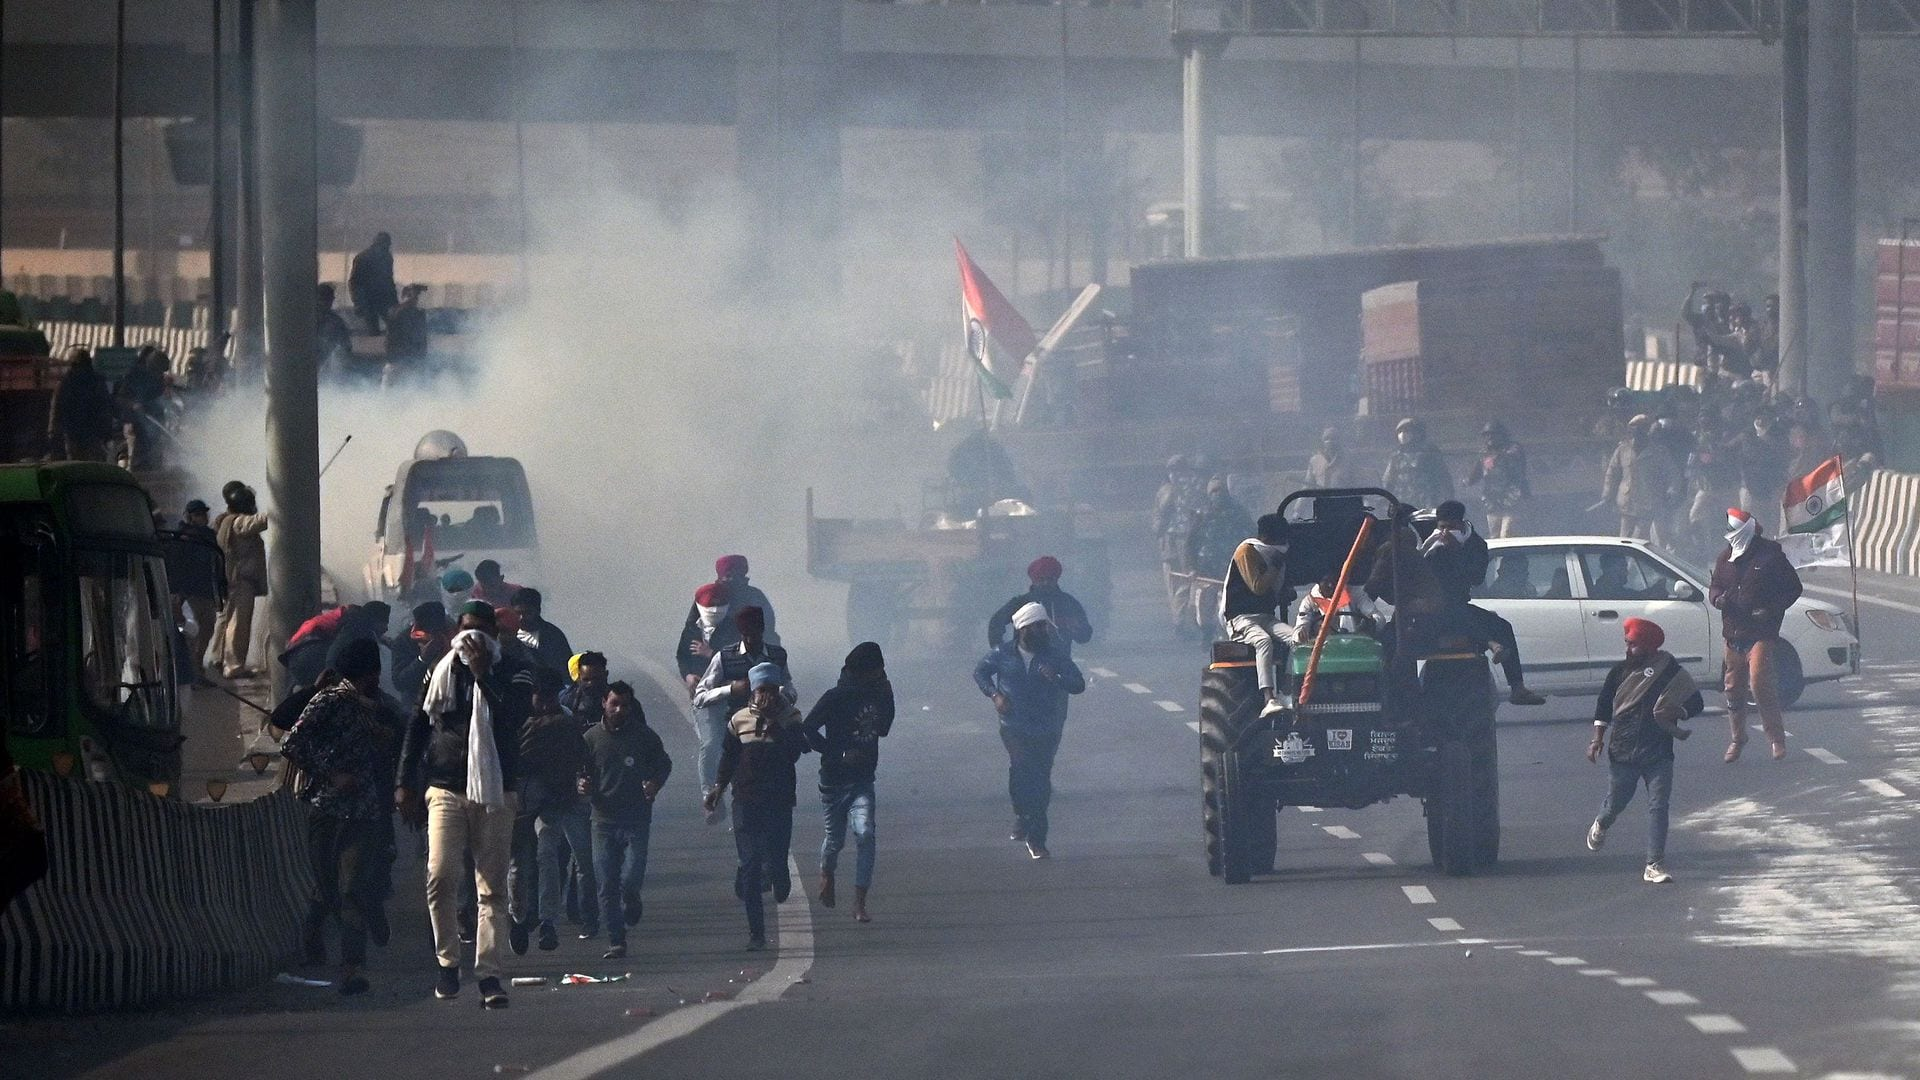 Farmers ride through the smoke of tear gas fired by the police as they protest the Indian central government's recent agricultural reforms in the capital New Delhi on Tuesday.